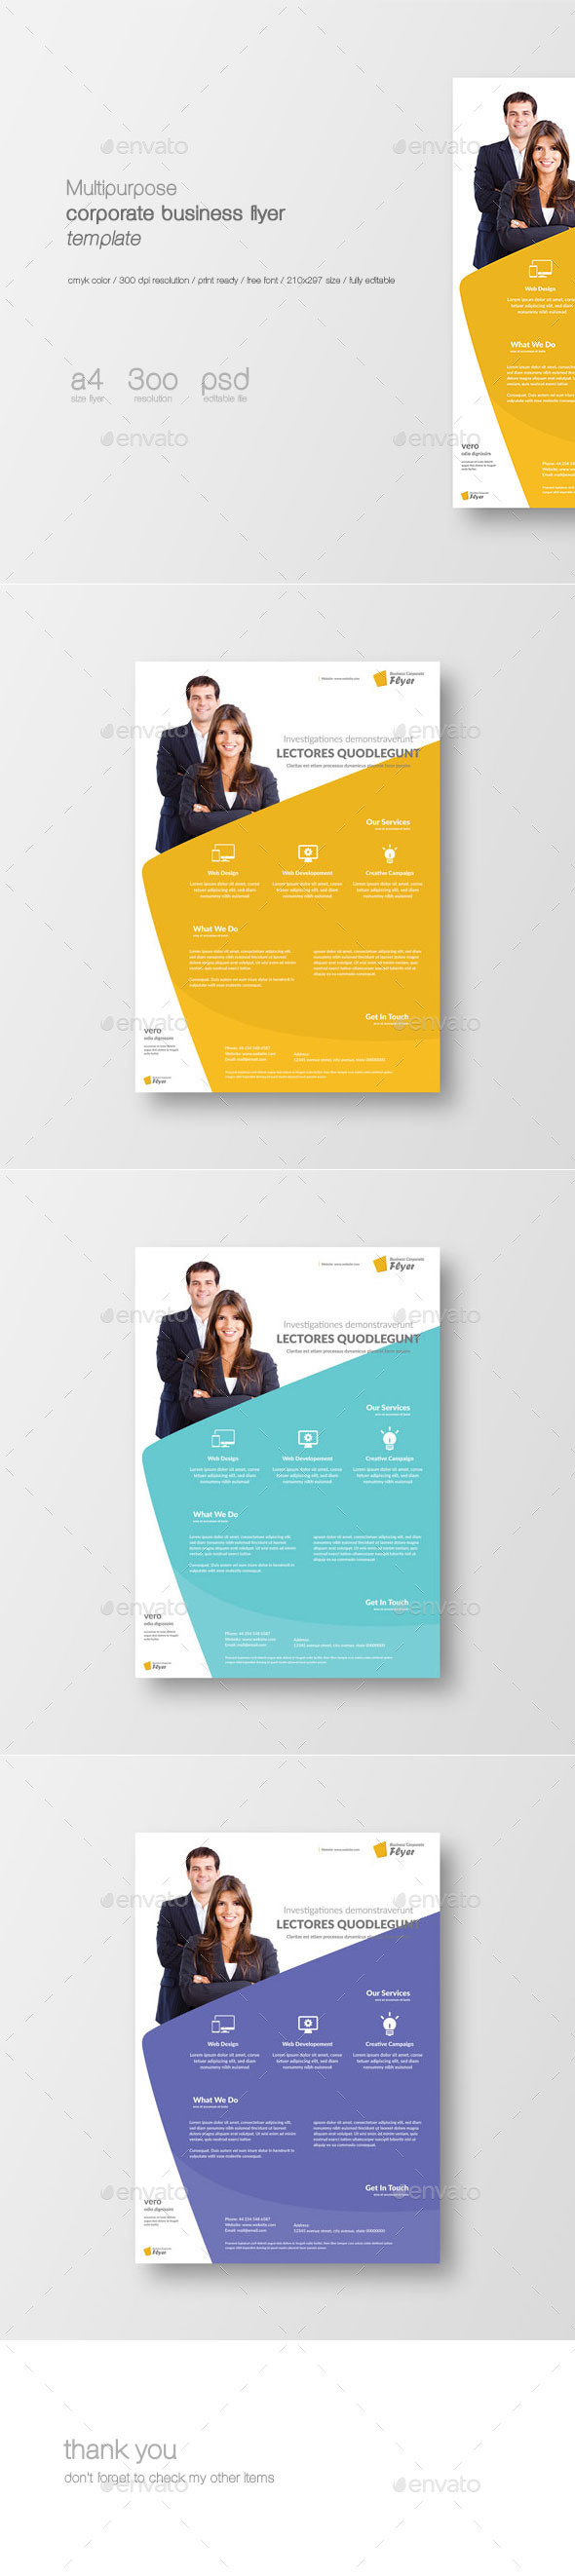 GraphicRiver Multipurpose Corporate Flyer Template 11448004